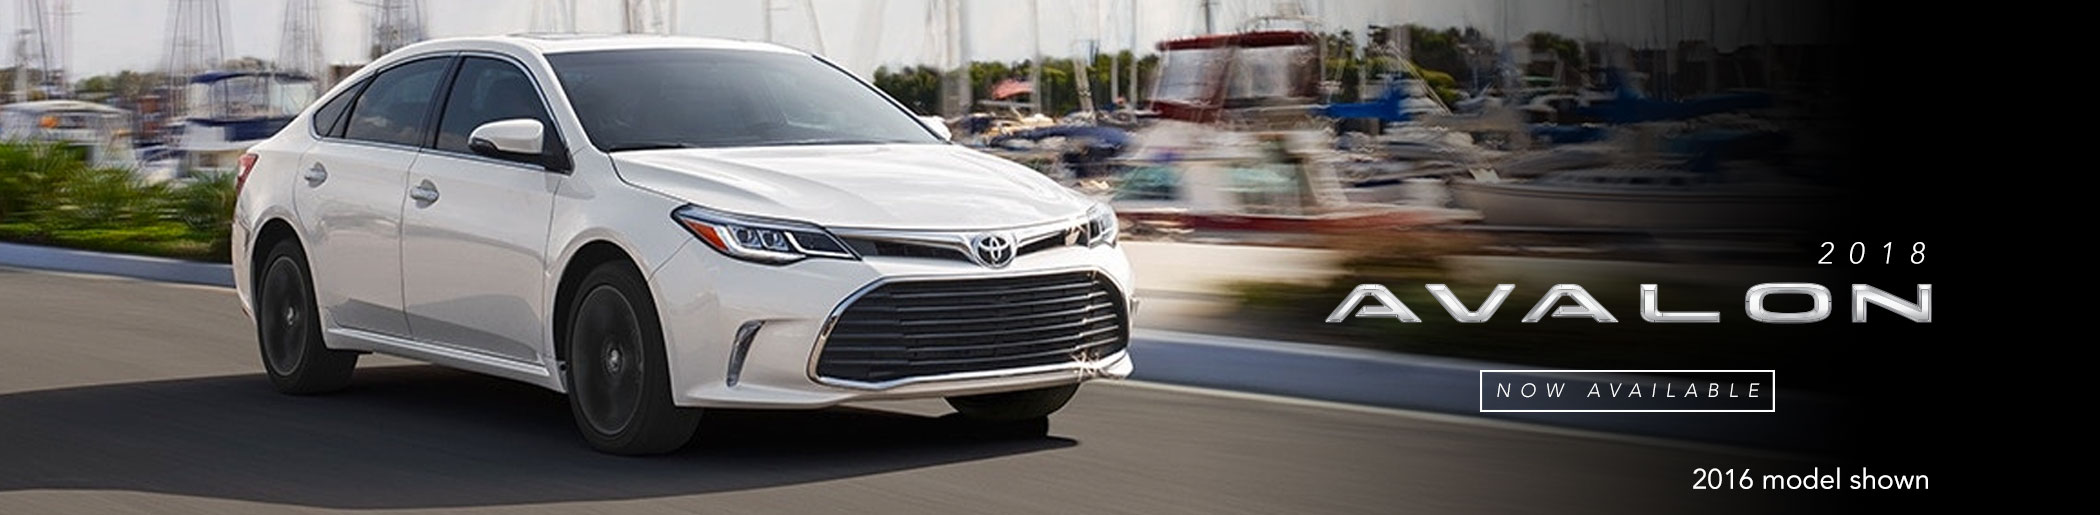 se at camry luxury sale llc bay toyota tampa in inventory for details fl